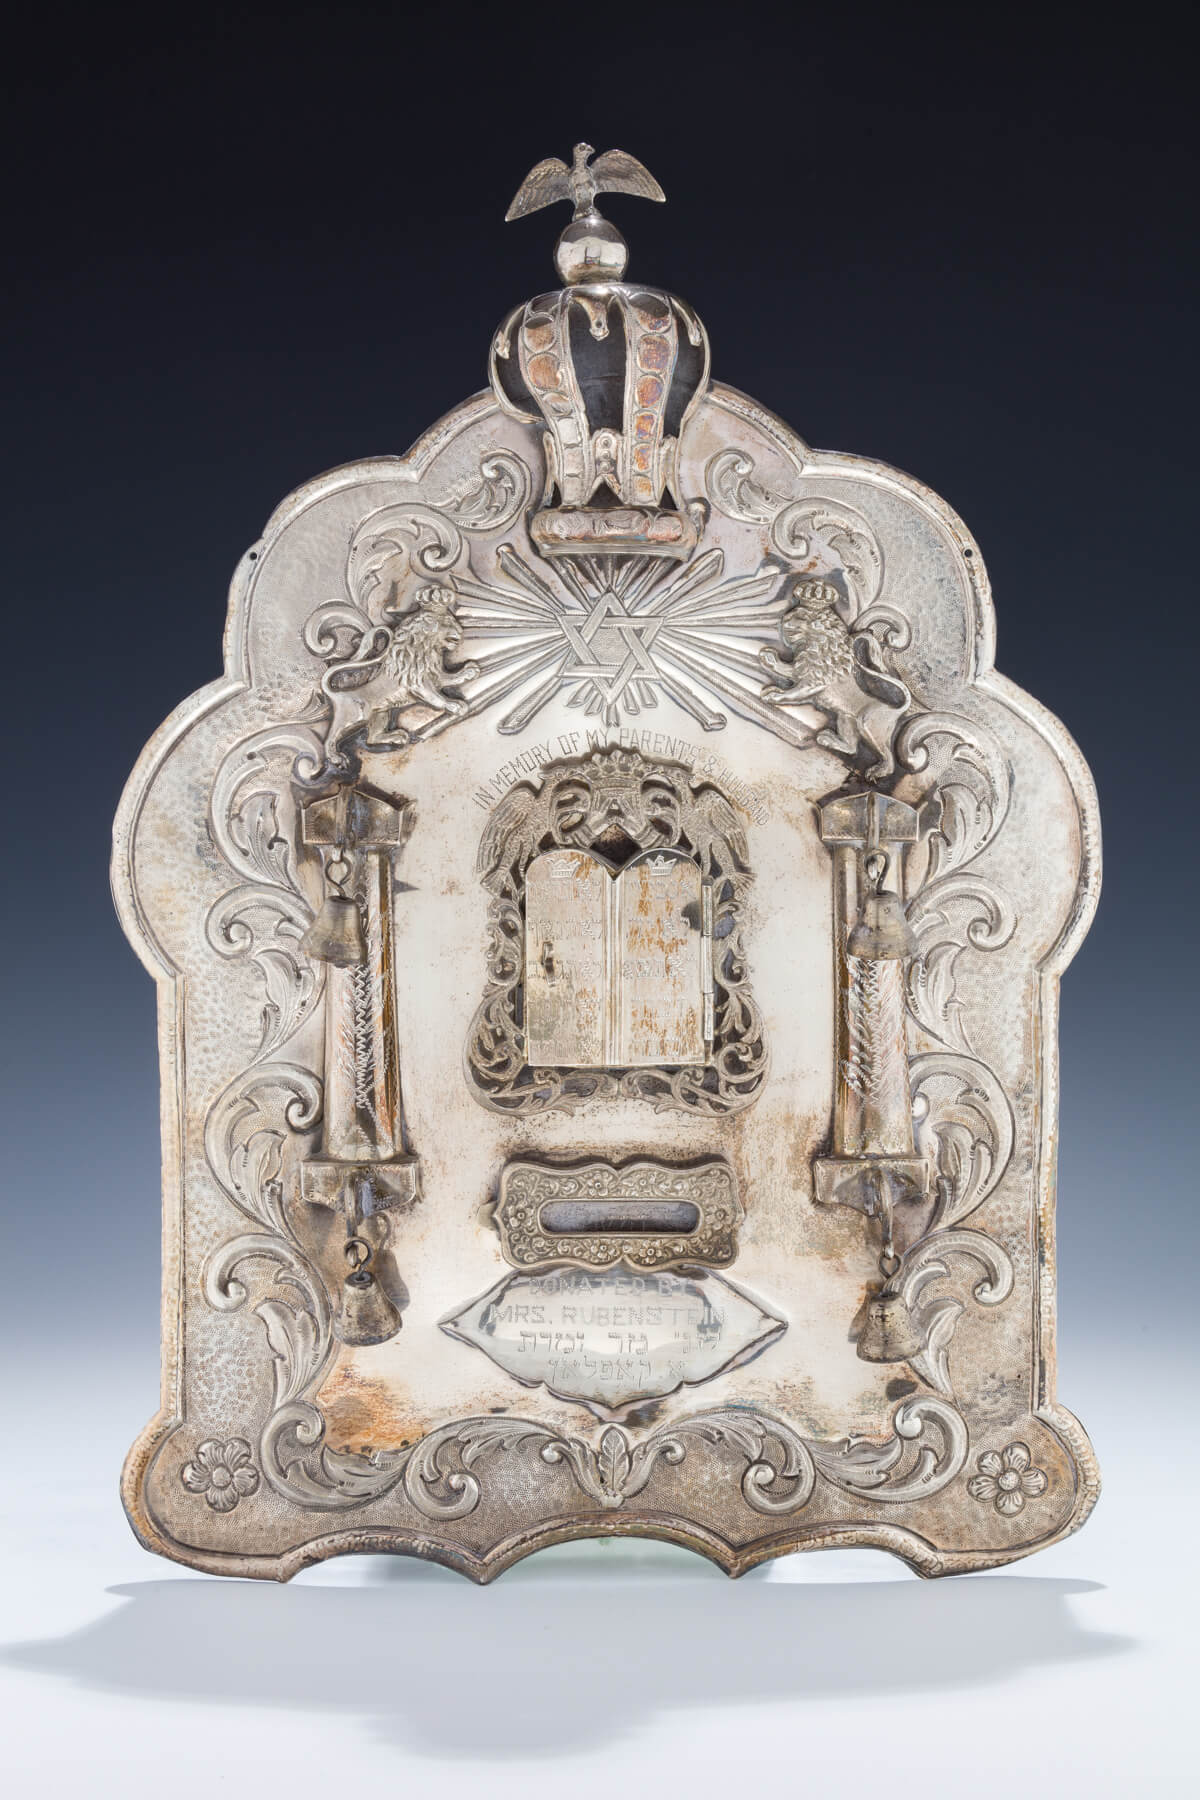 011. A Monumental Sterling Silver Torah Shield